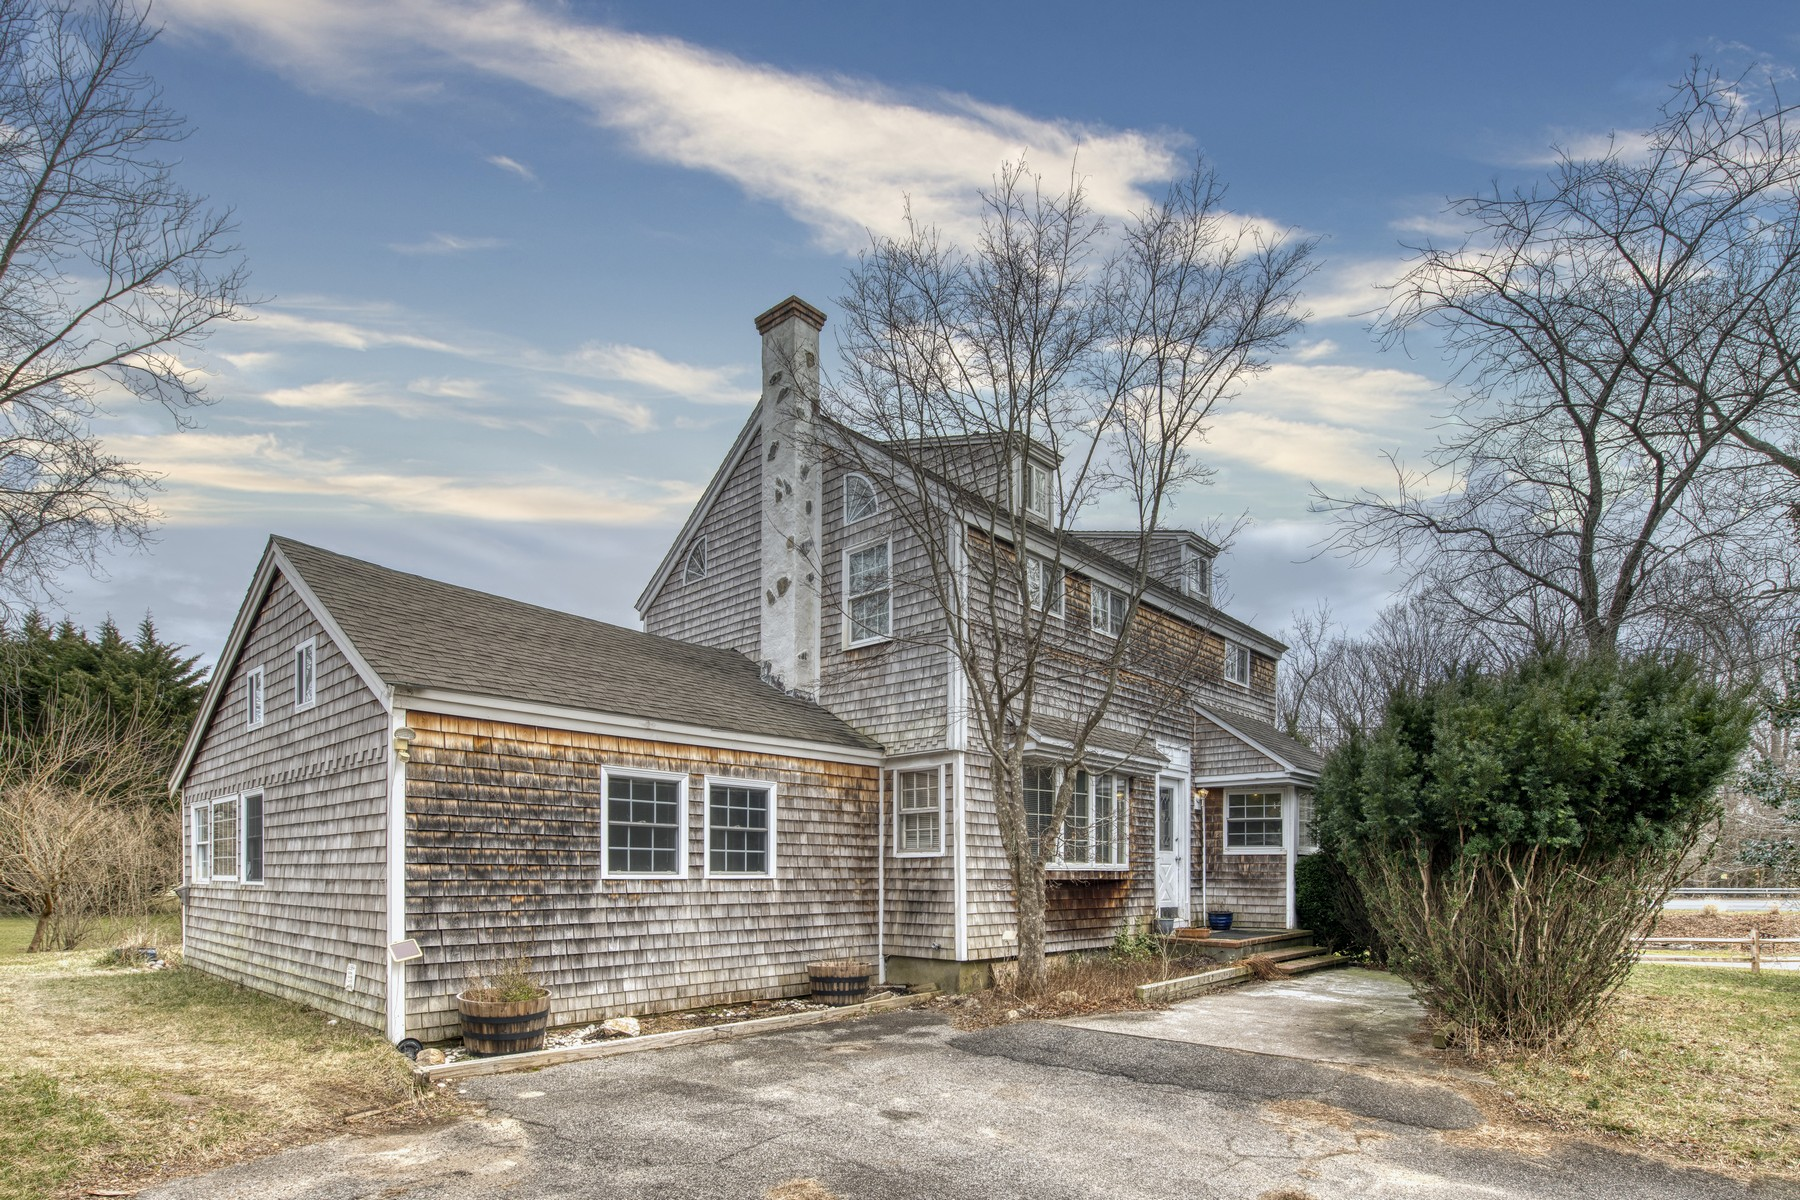 Single Family Homes for Sale at Southold 170 Laurel Avenue Southold, New York 11971 United States